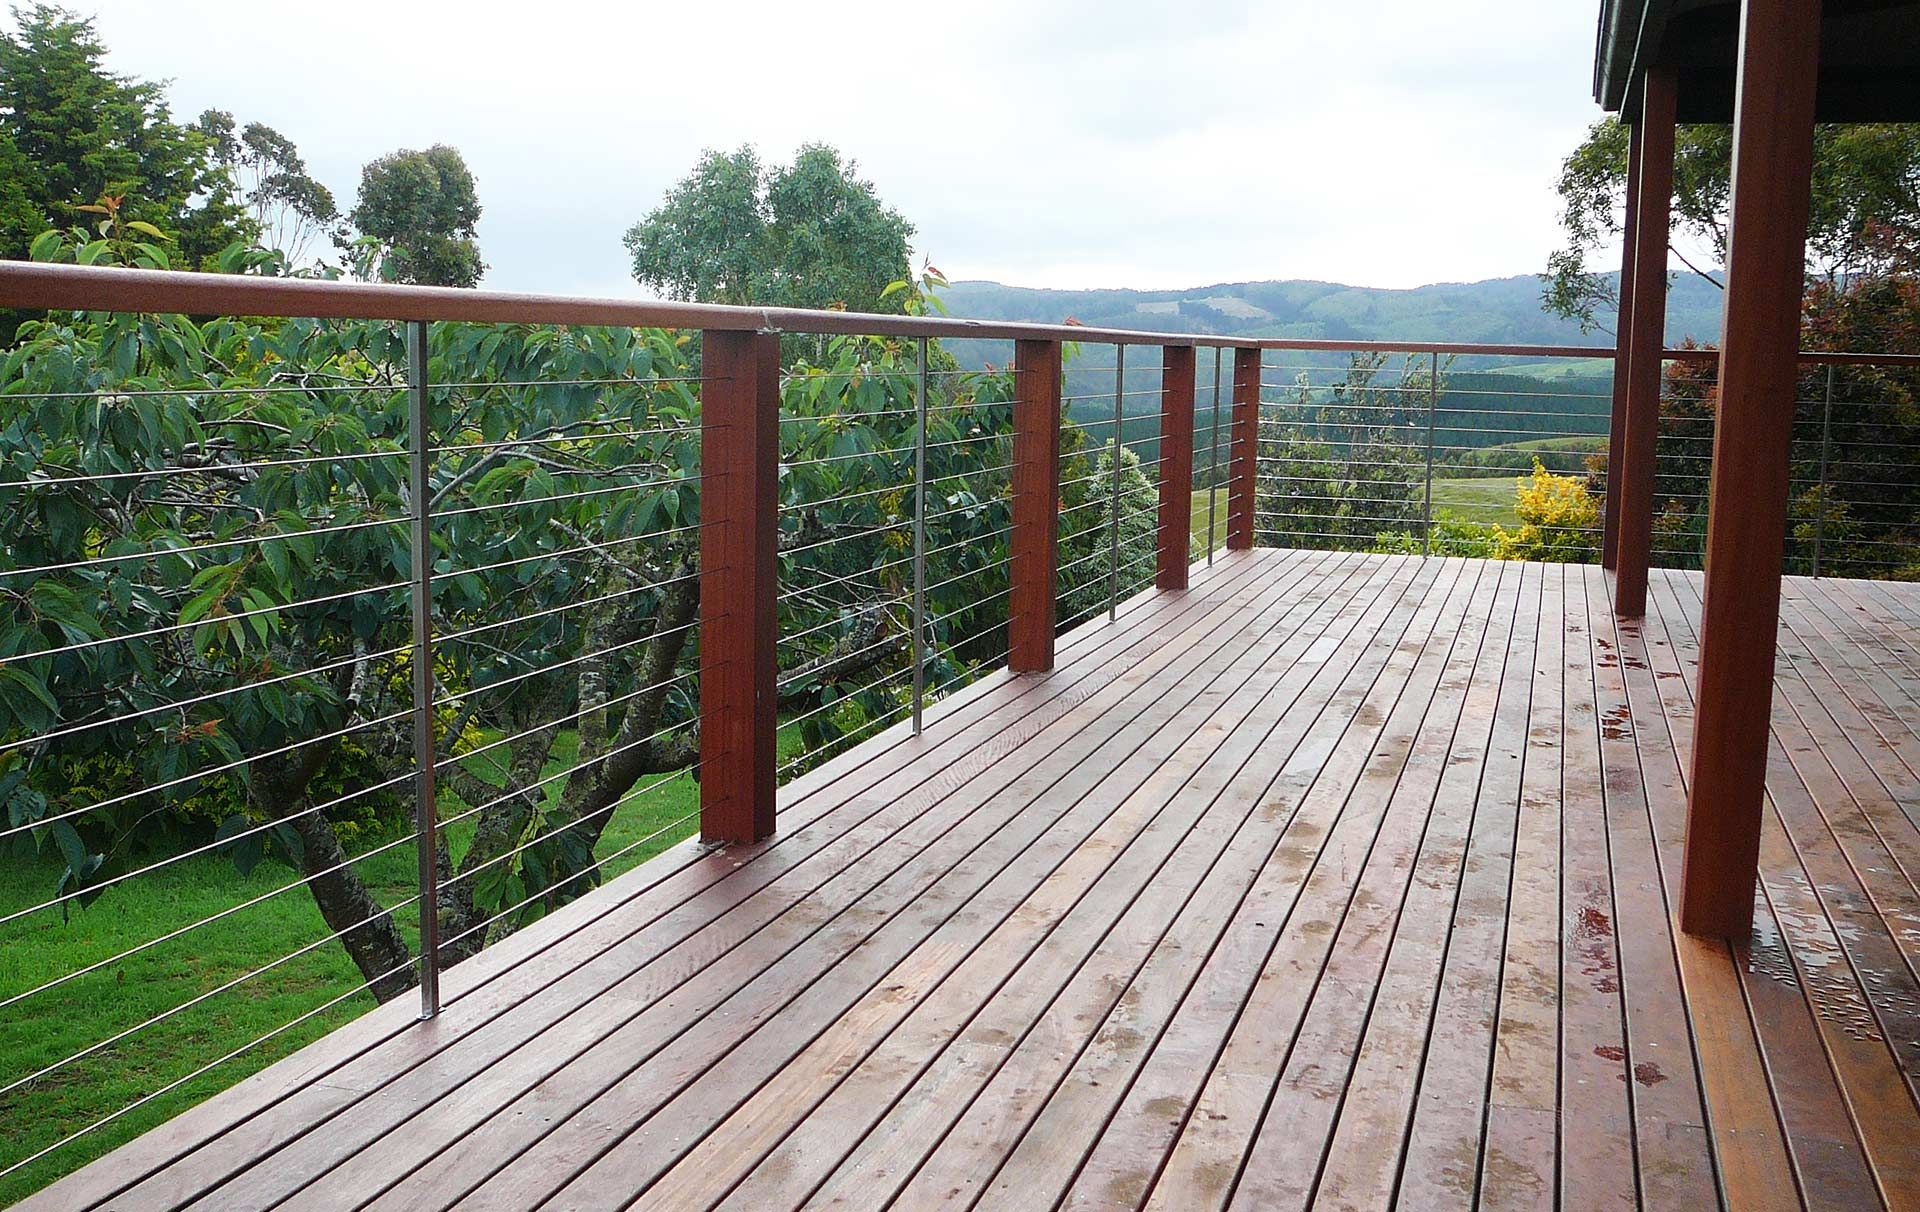 Stainless Wire Balustrade Google Search 栏杆 Wire